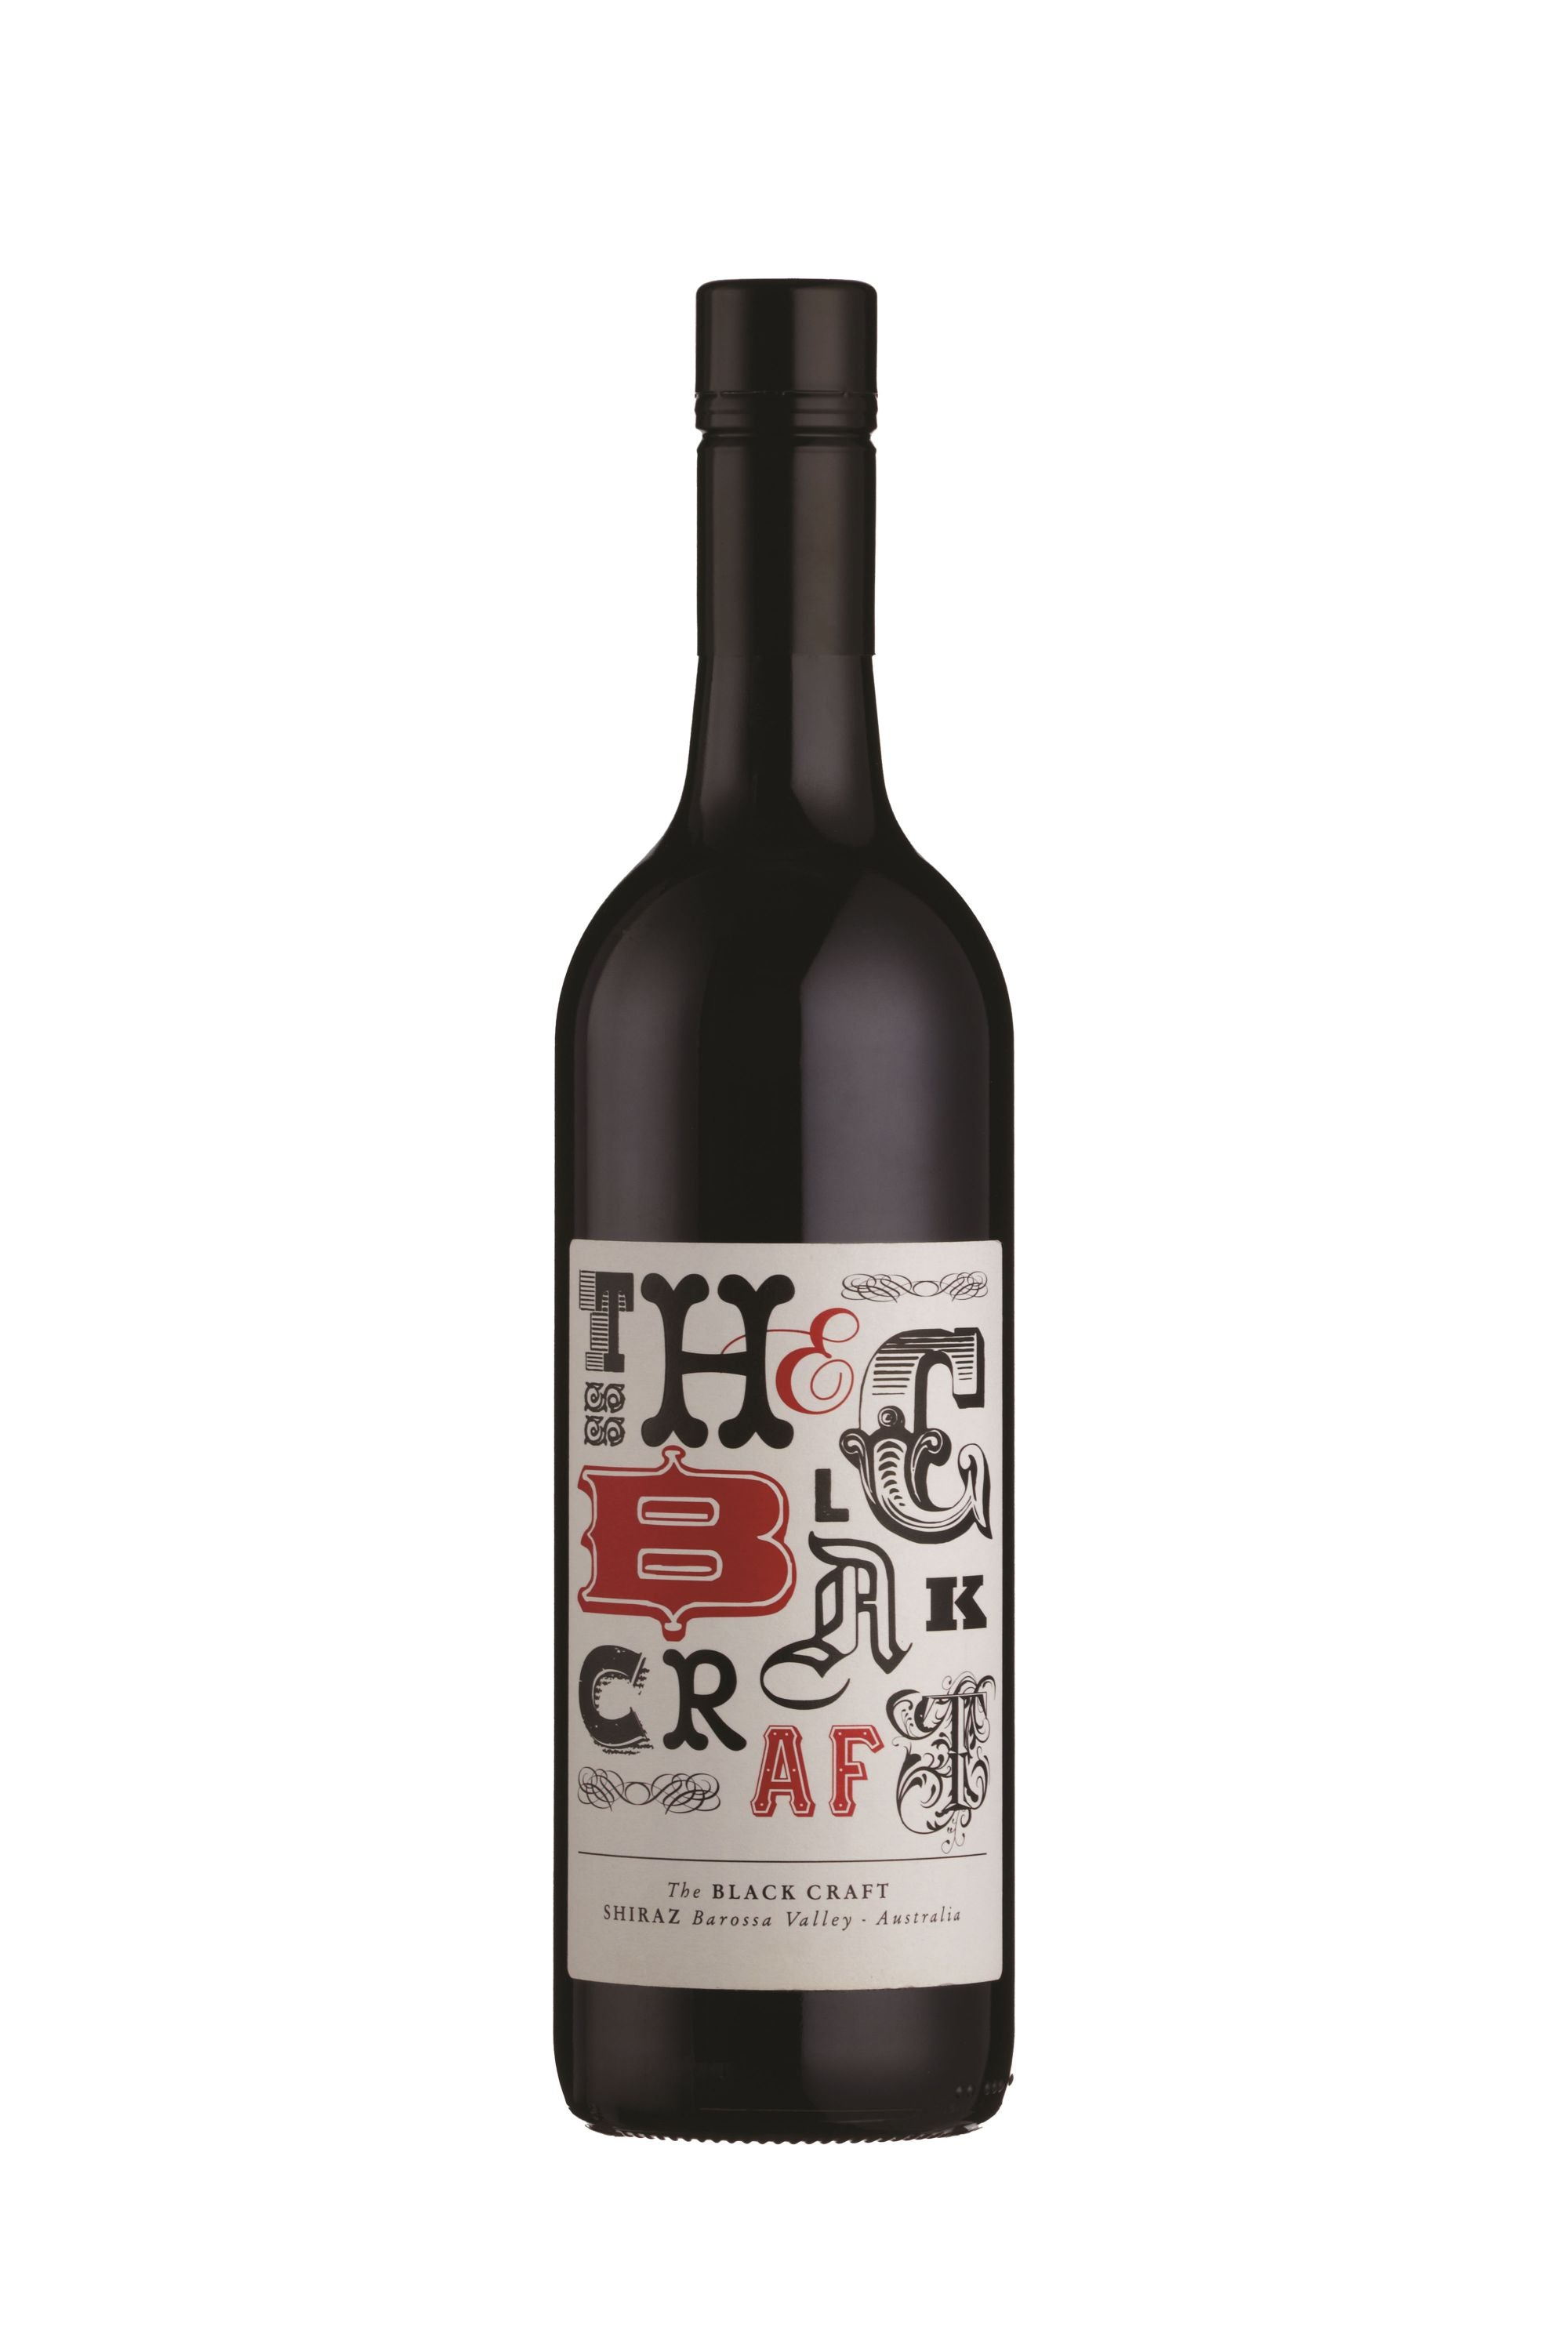 The Black Craft shiraz